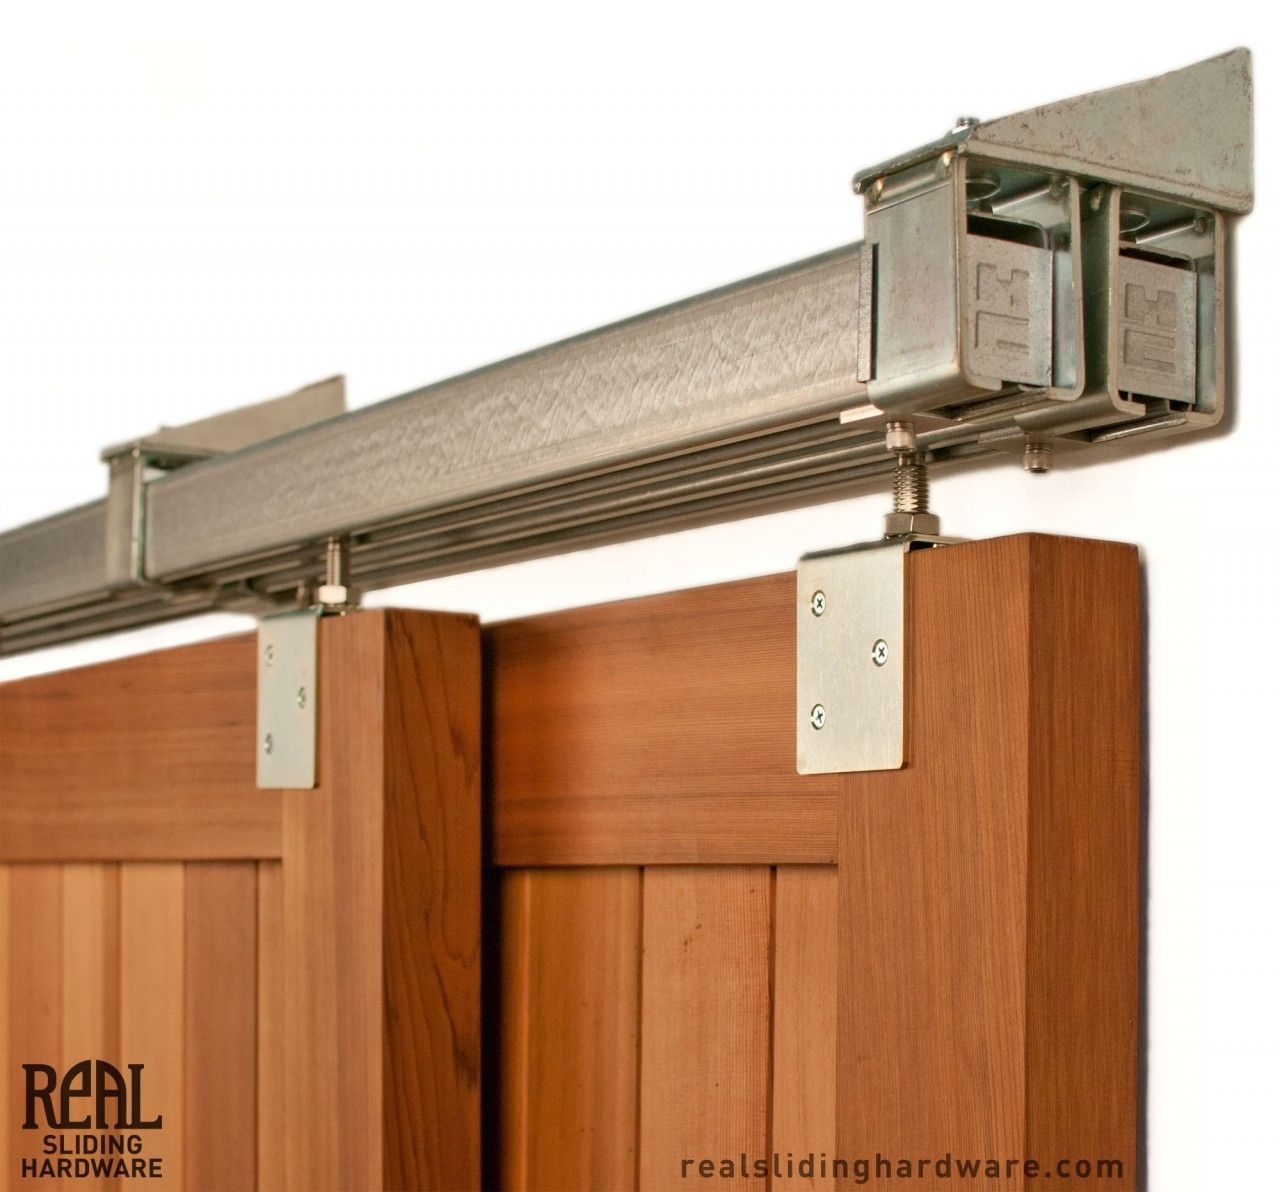 View Source Image Barn Door Cabinet Barn Door Hardware Exterior Barn Doors